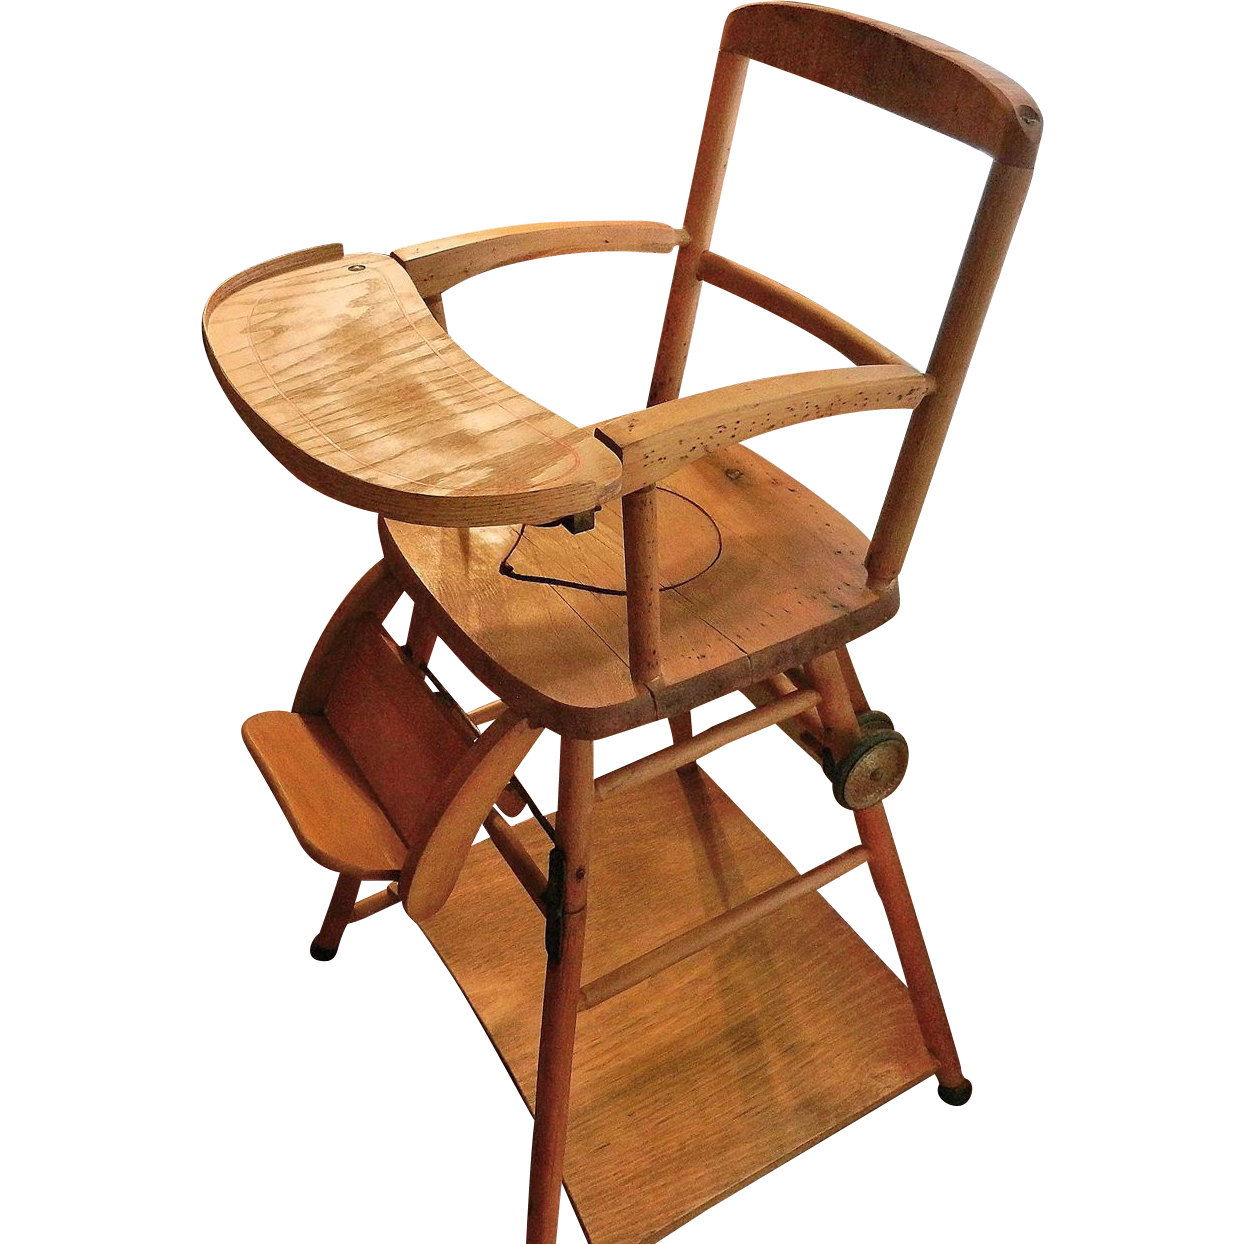 Vintage Wooden High Chair, Potty Chair and Play Chair in One : My  Grandmother Had One | Ruby Lane - Vintage Wooden High Chair, Potty Chair And Play Chair In One : My